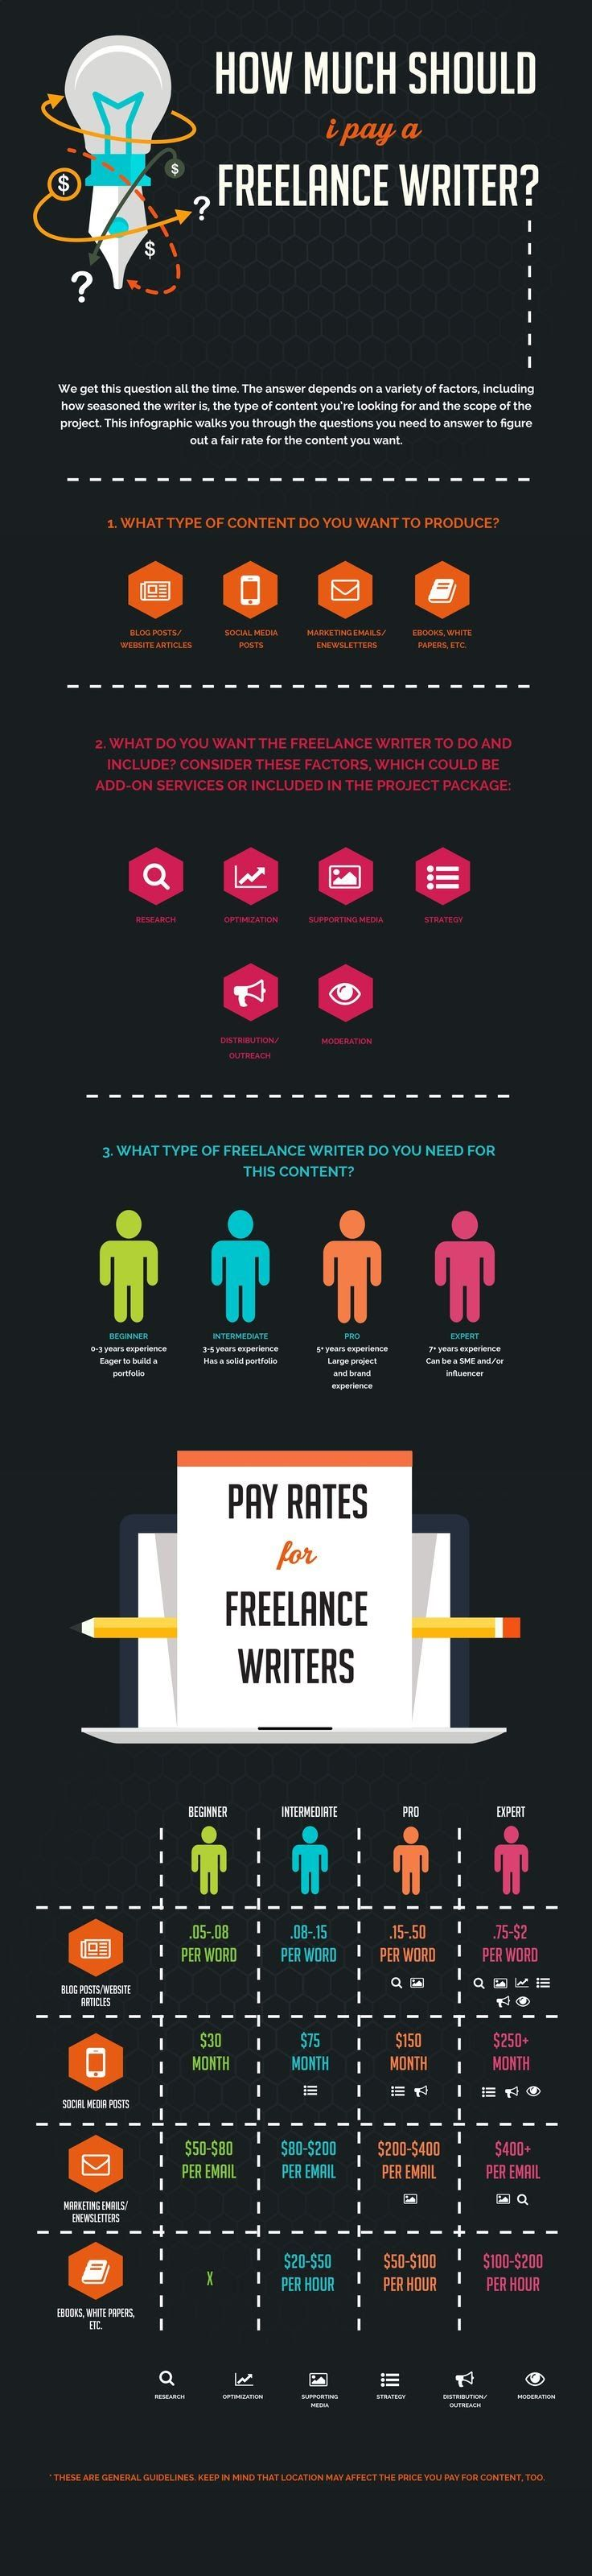 How Much Should I Pay a Freelance Writer? Infographic